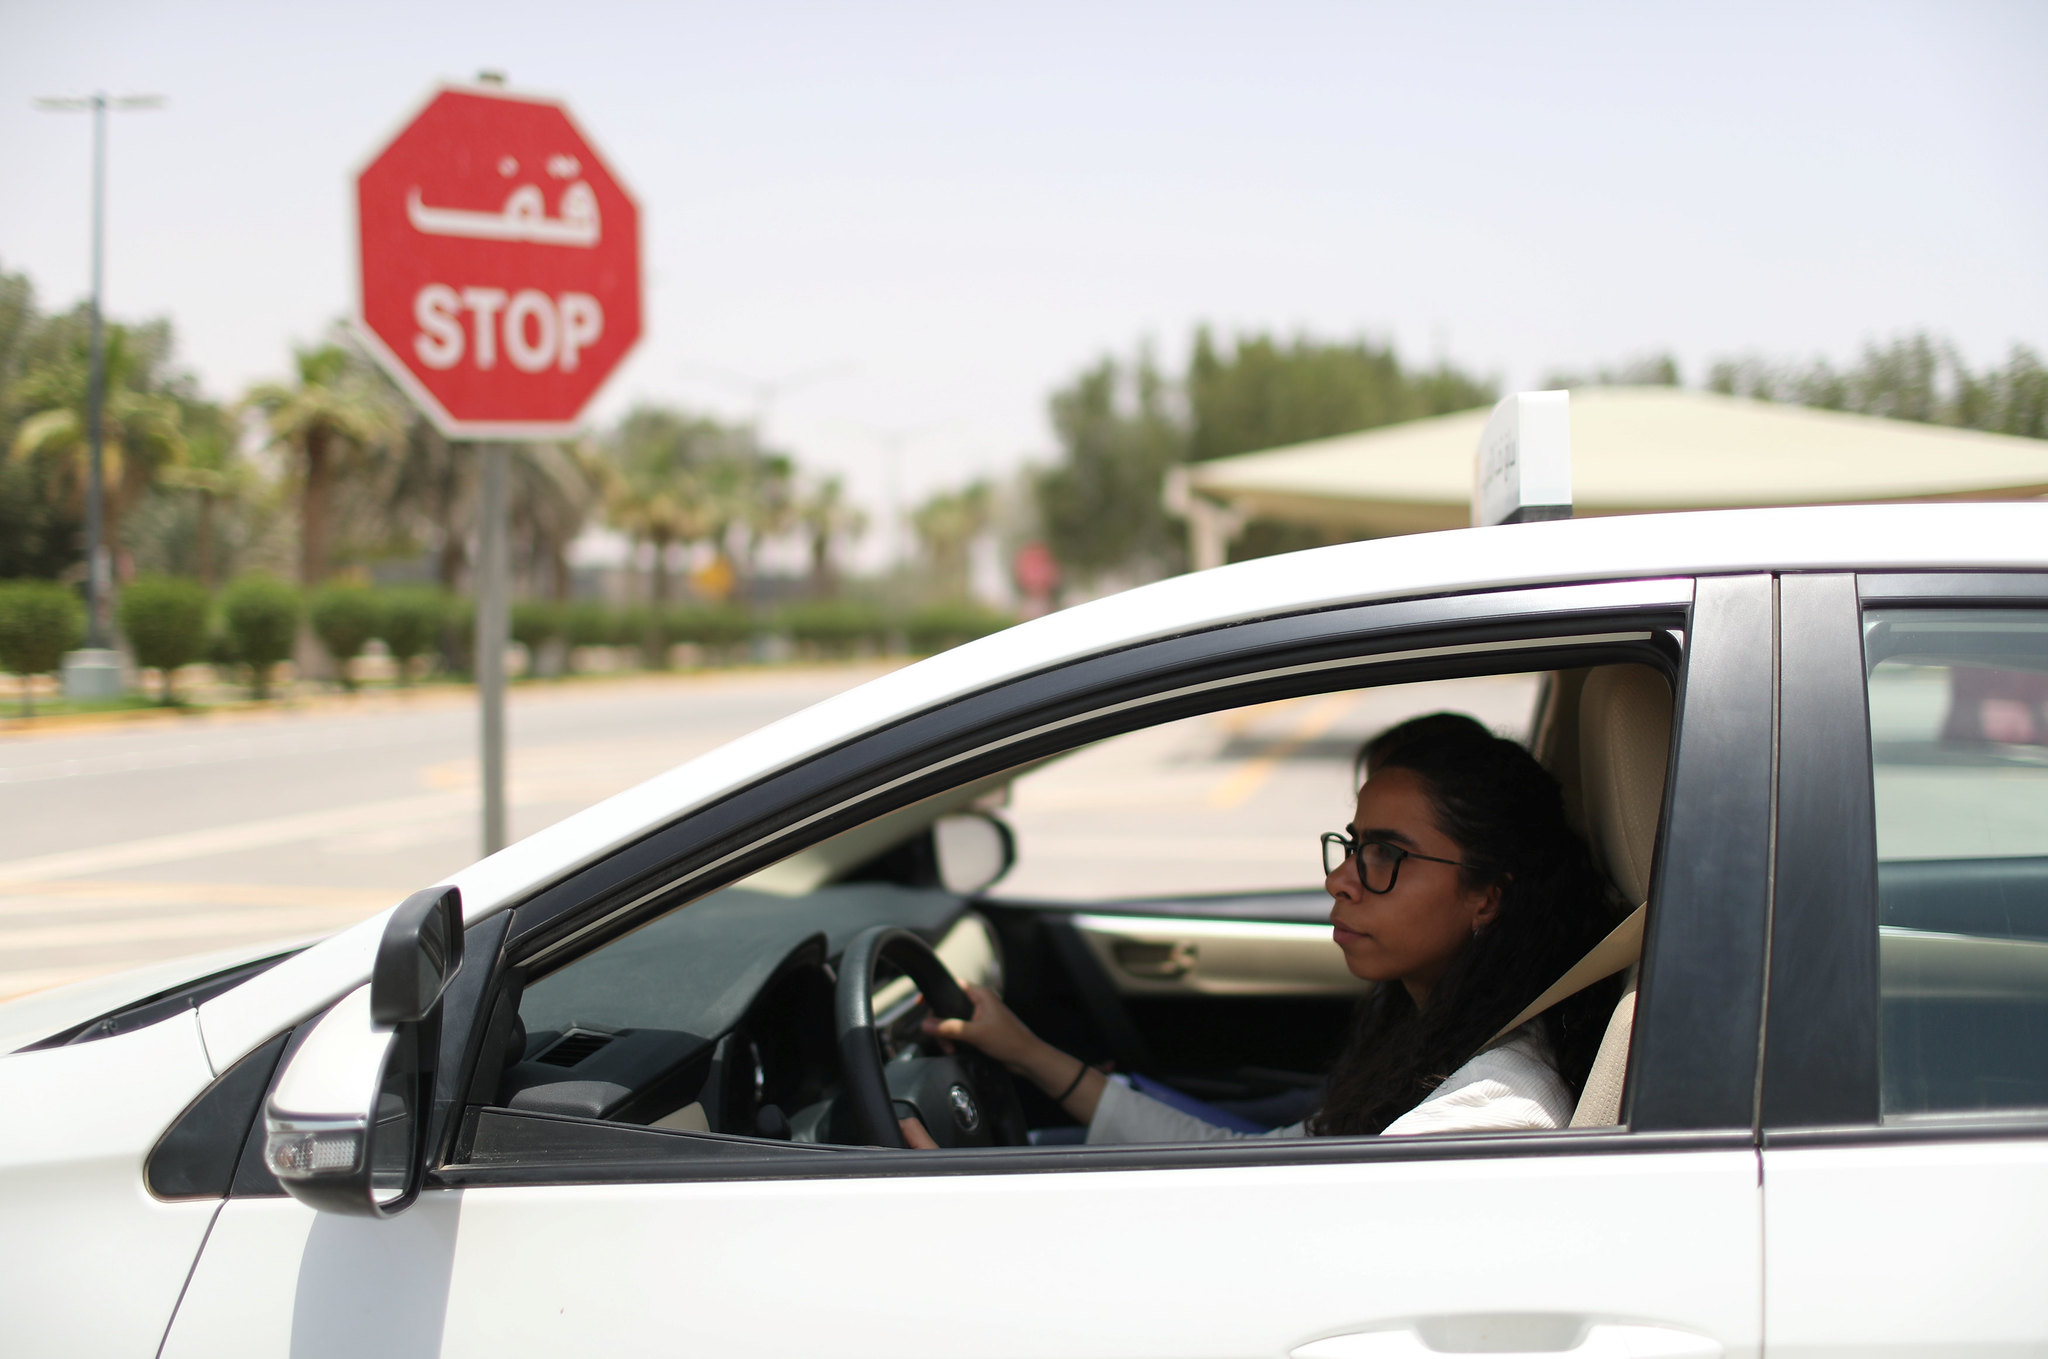 A woman taking a driving lesson in Saudi Arabia, June 2018